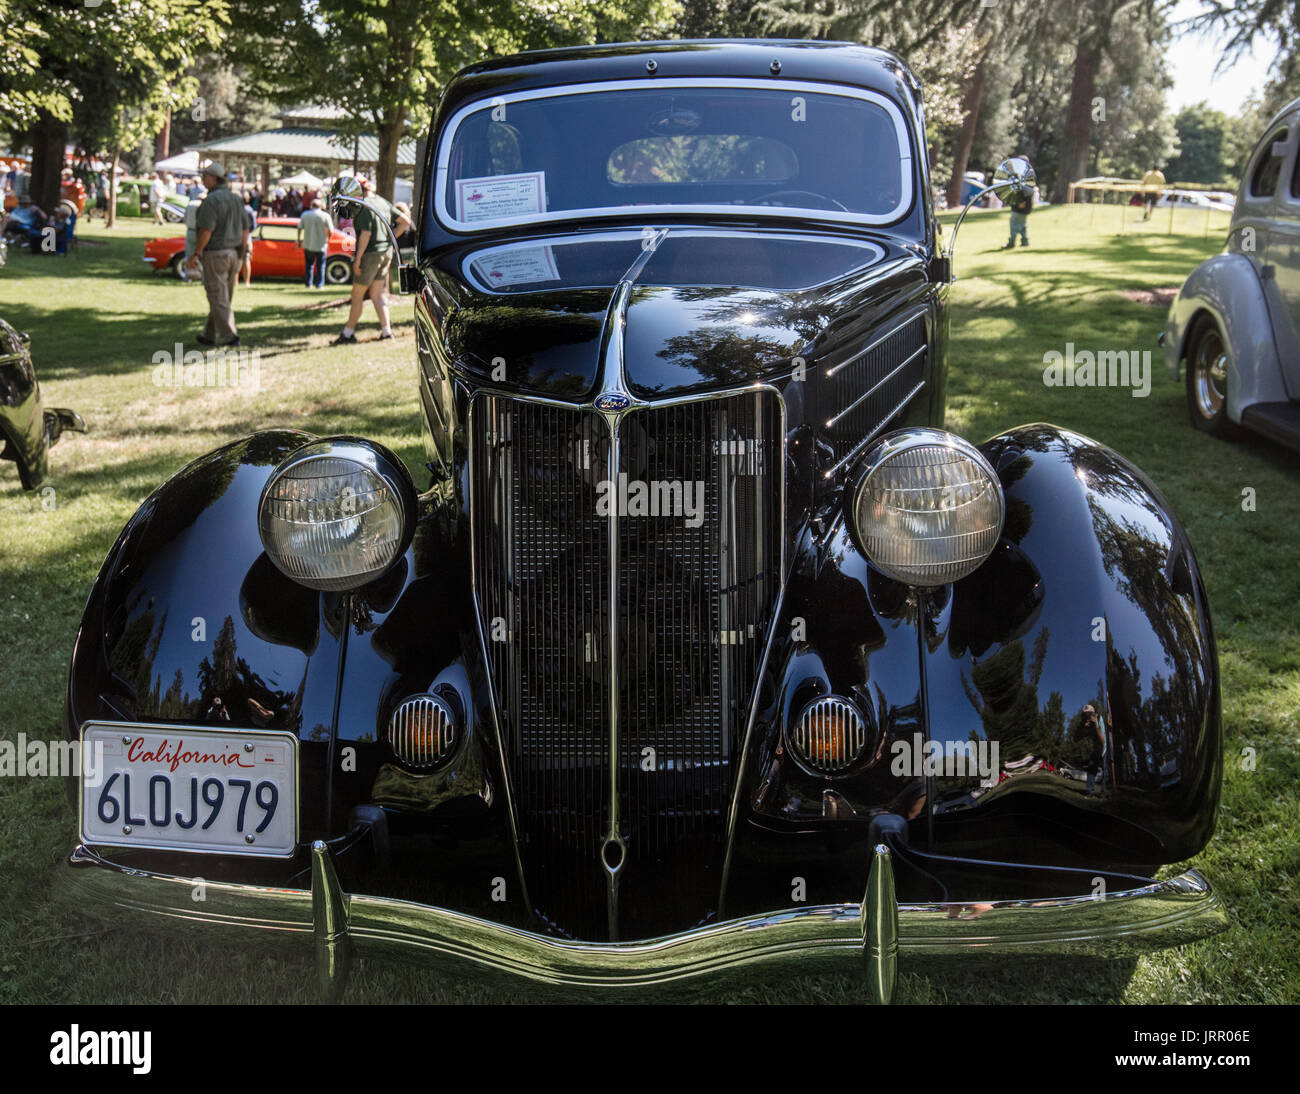 Vintage cars at the Back to the Fifties Car Show in Grants Pass ...